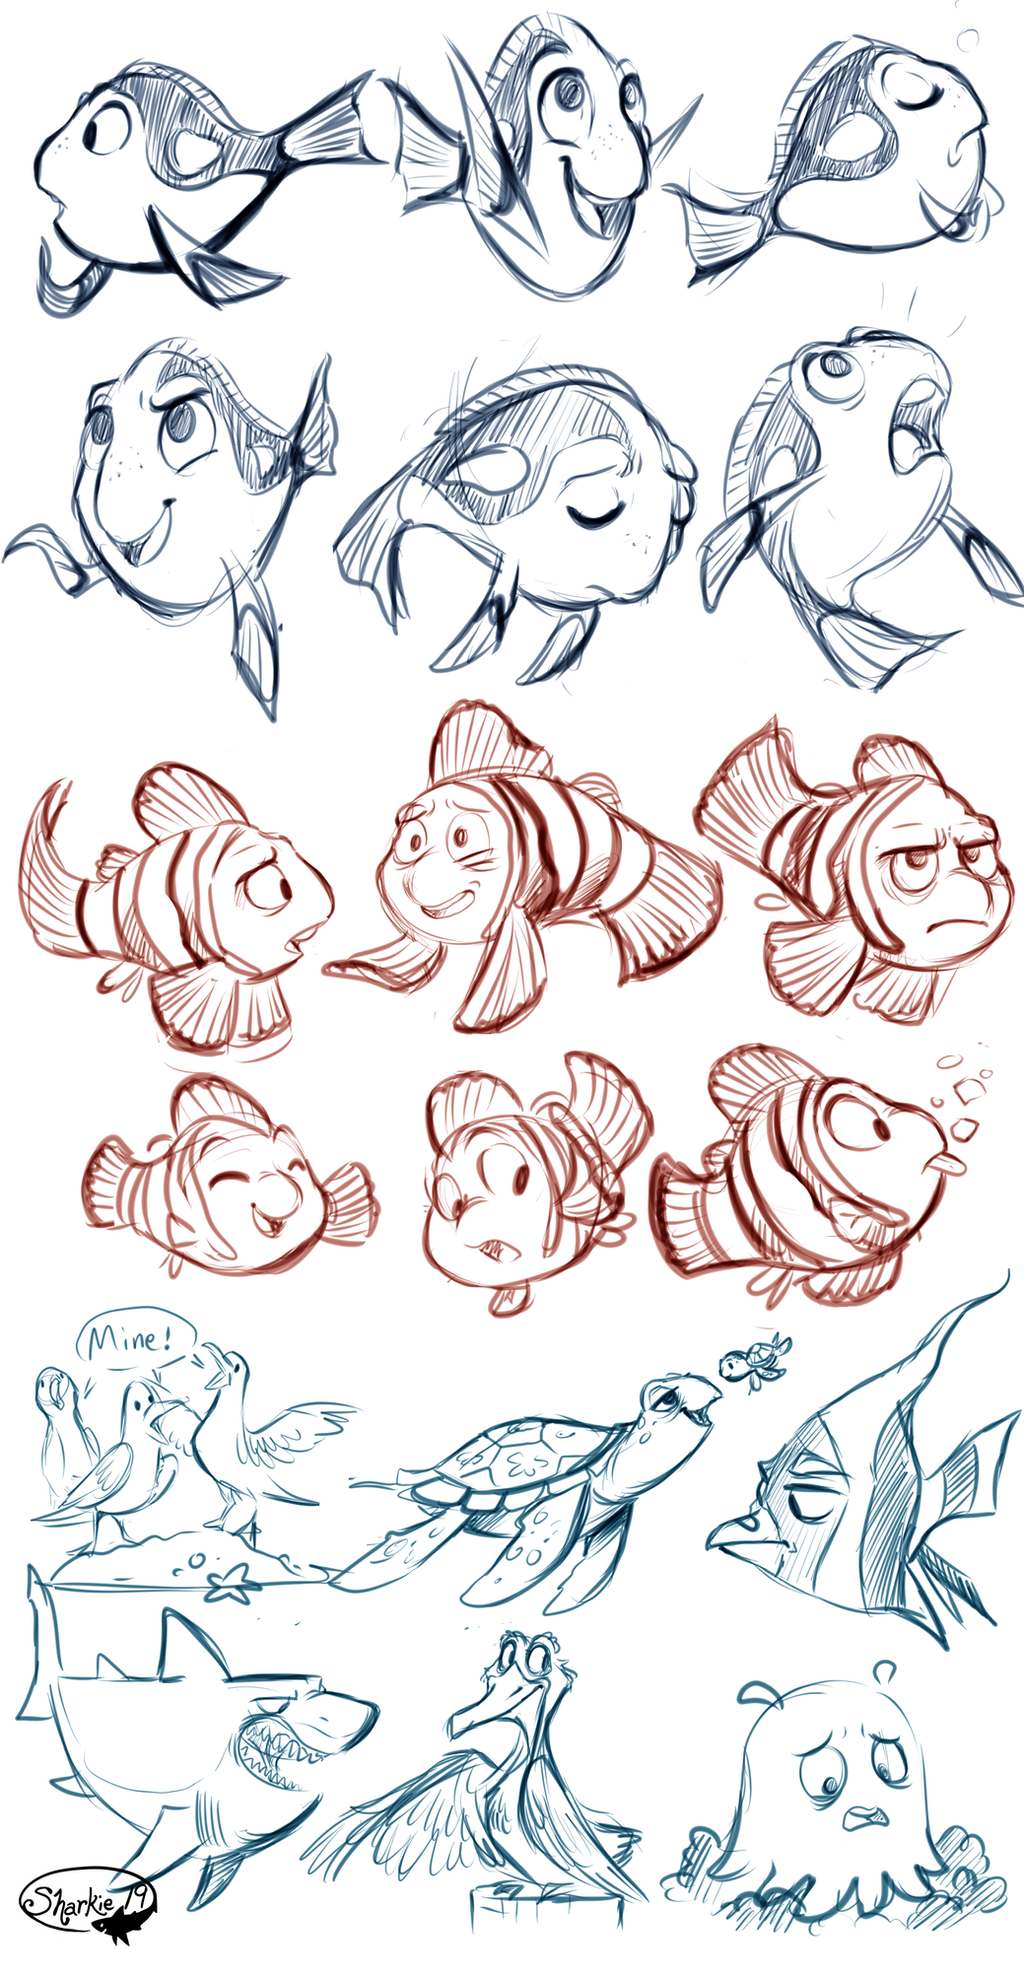 Character Design Quotes : Finding nemo sketches by sharkie on deviantart